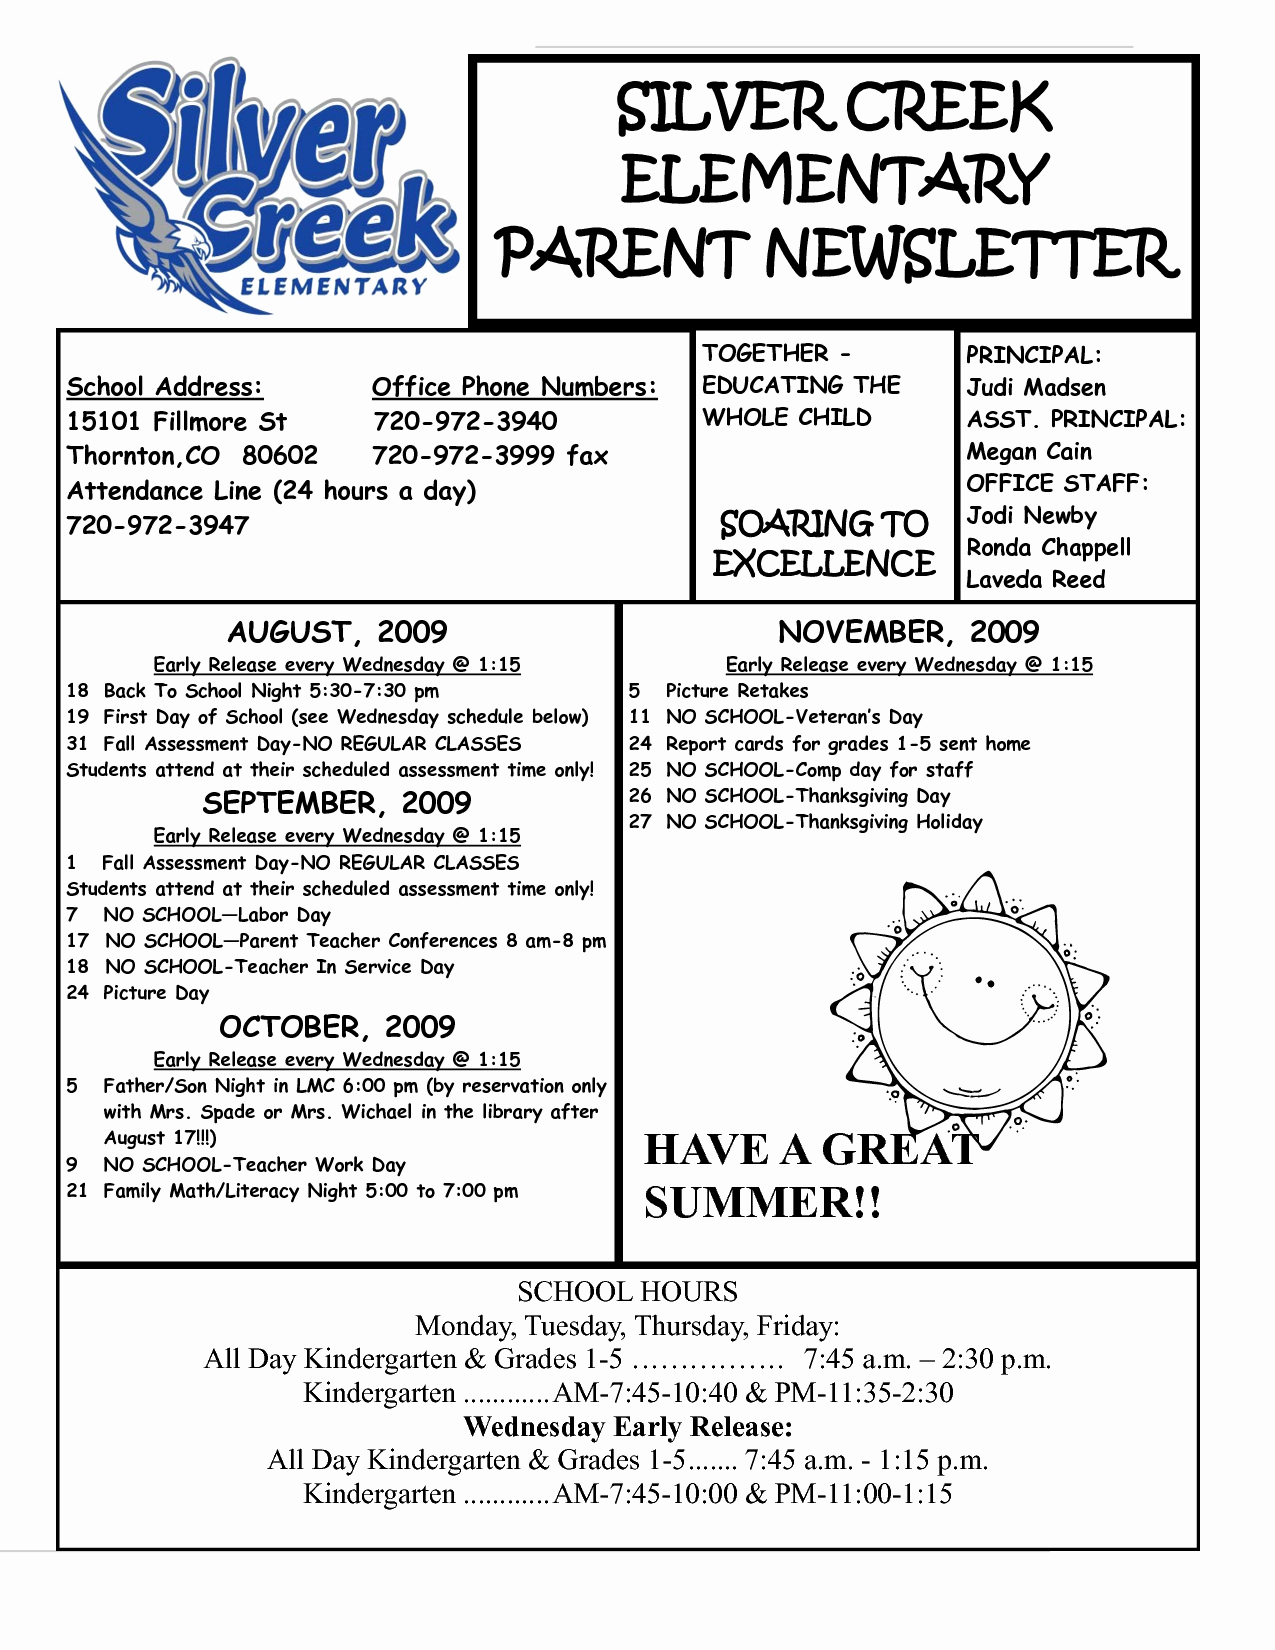 Elementary School Newsletter Template Best Of Best S Of Parent Newsletter Examples Sample Parent